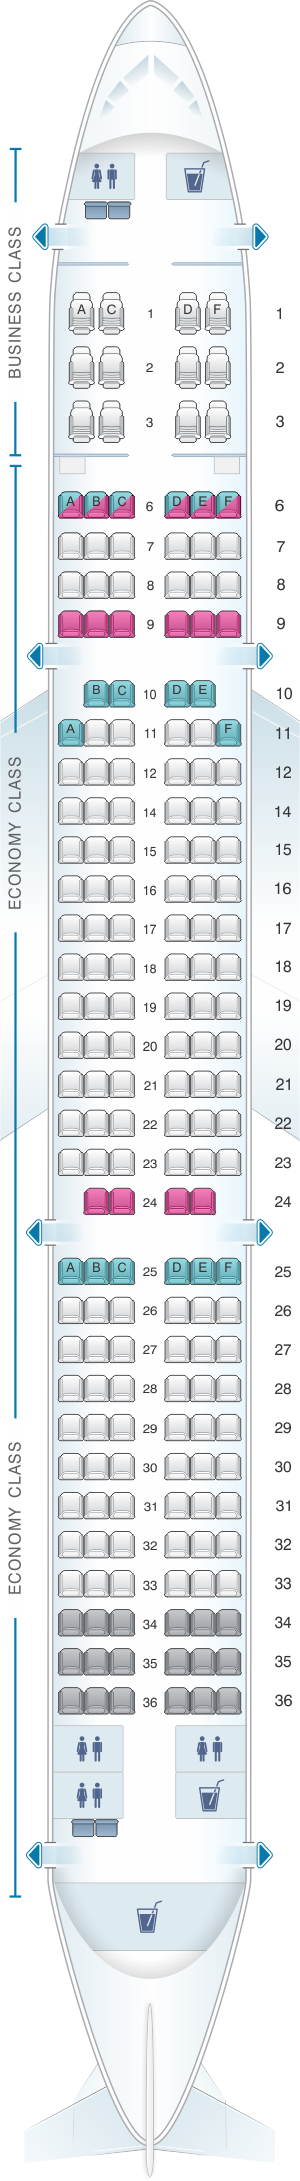 Seat map for SriLankan Airlines Airbus A321 NEO